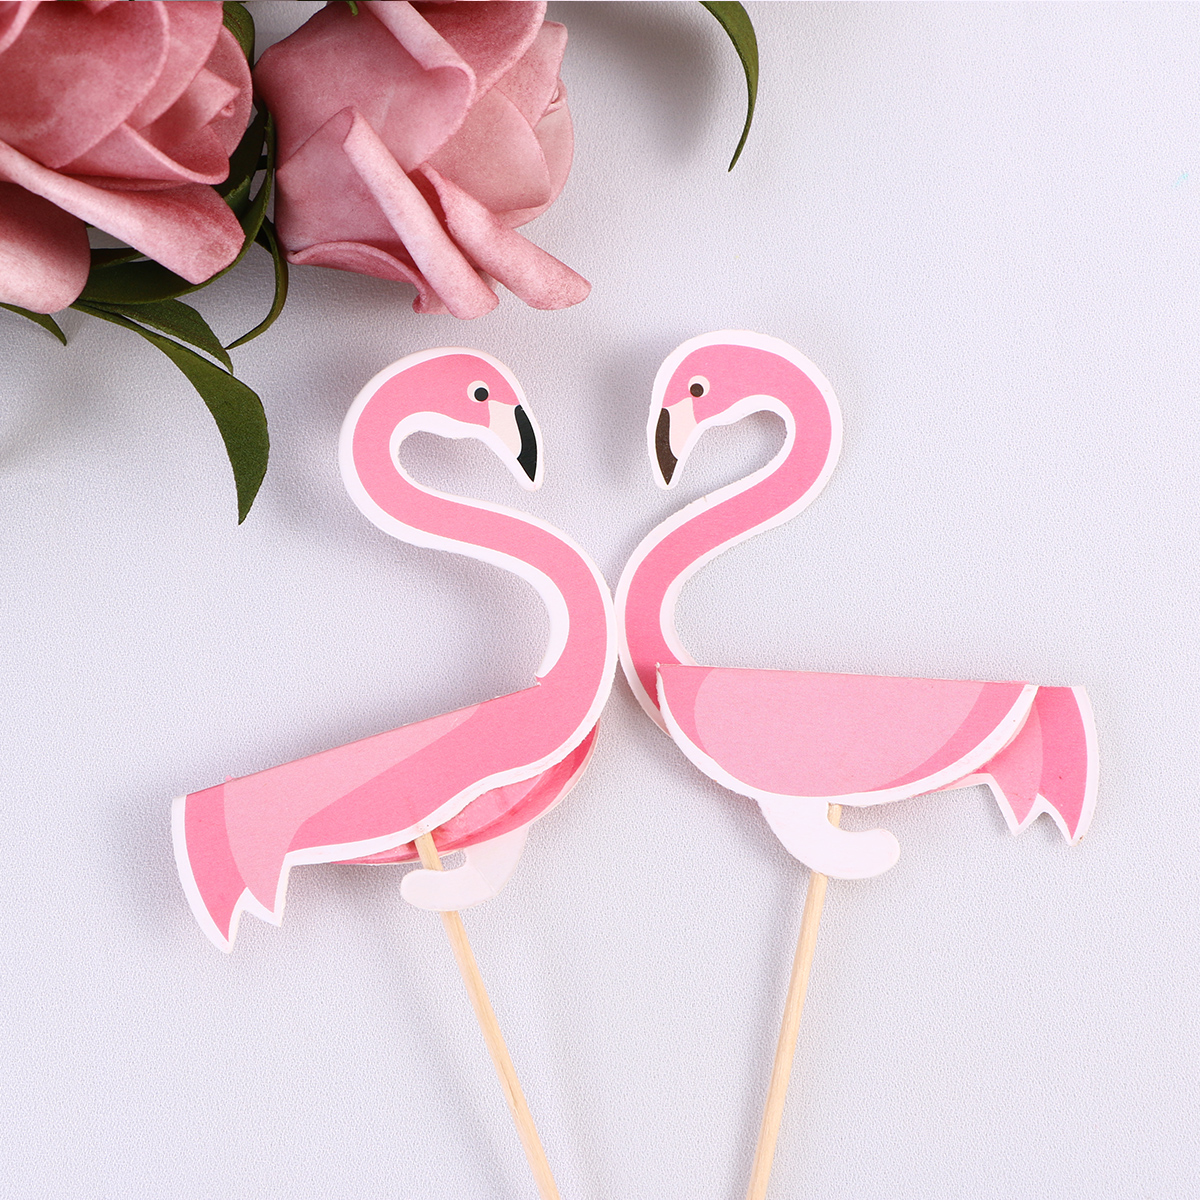 2 Pcs 3D Flamingo Cake Toppers Cupcake Picks for Wedding Baby Shower ...